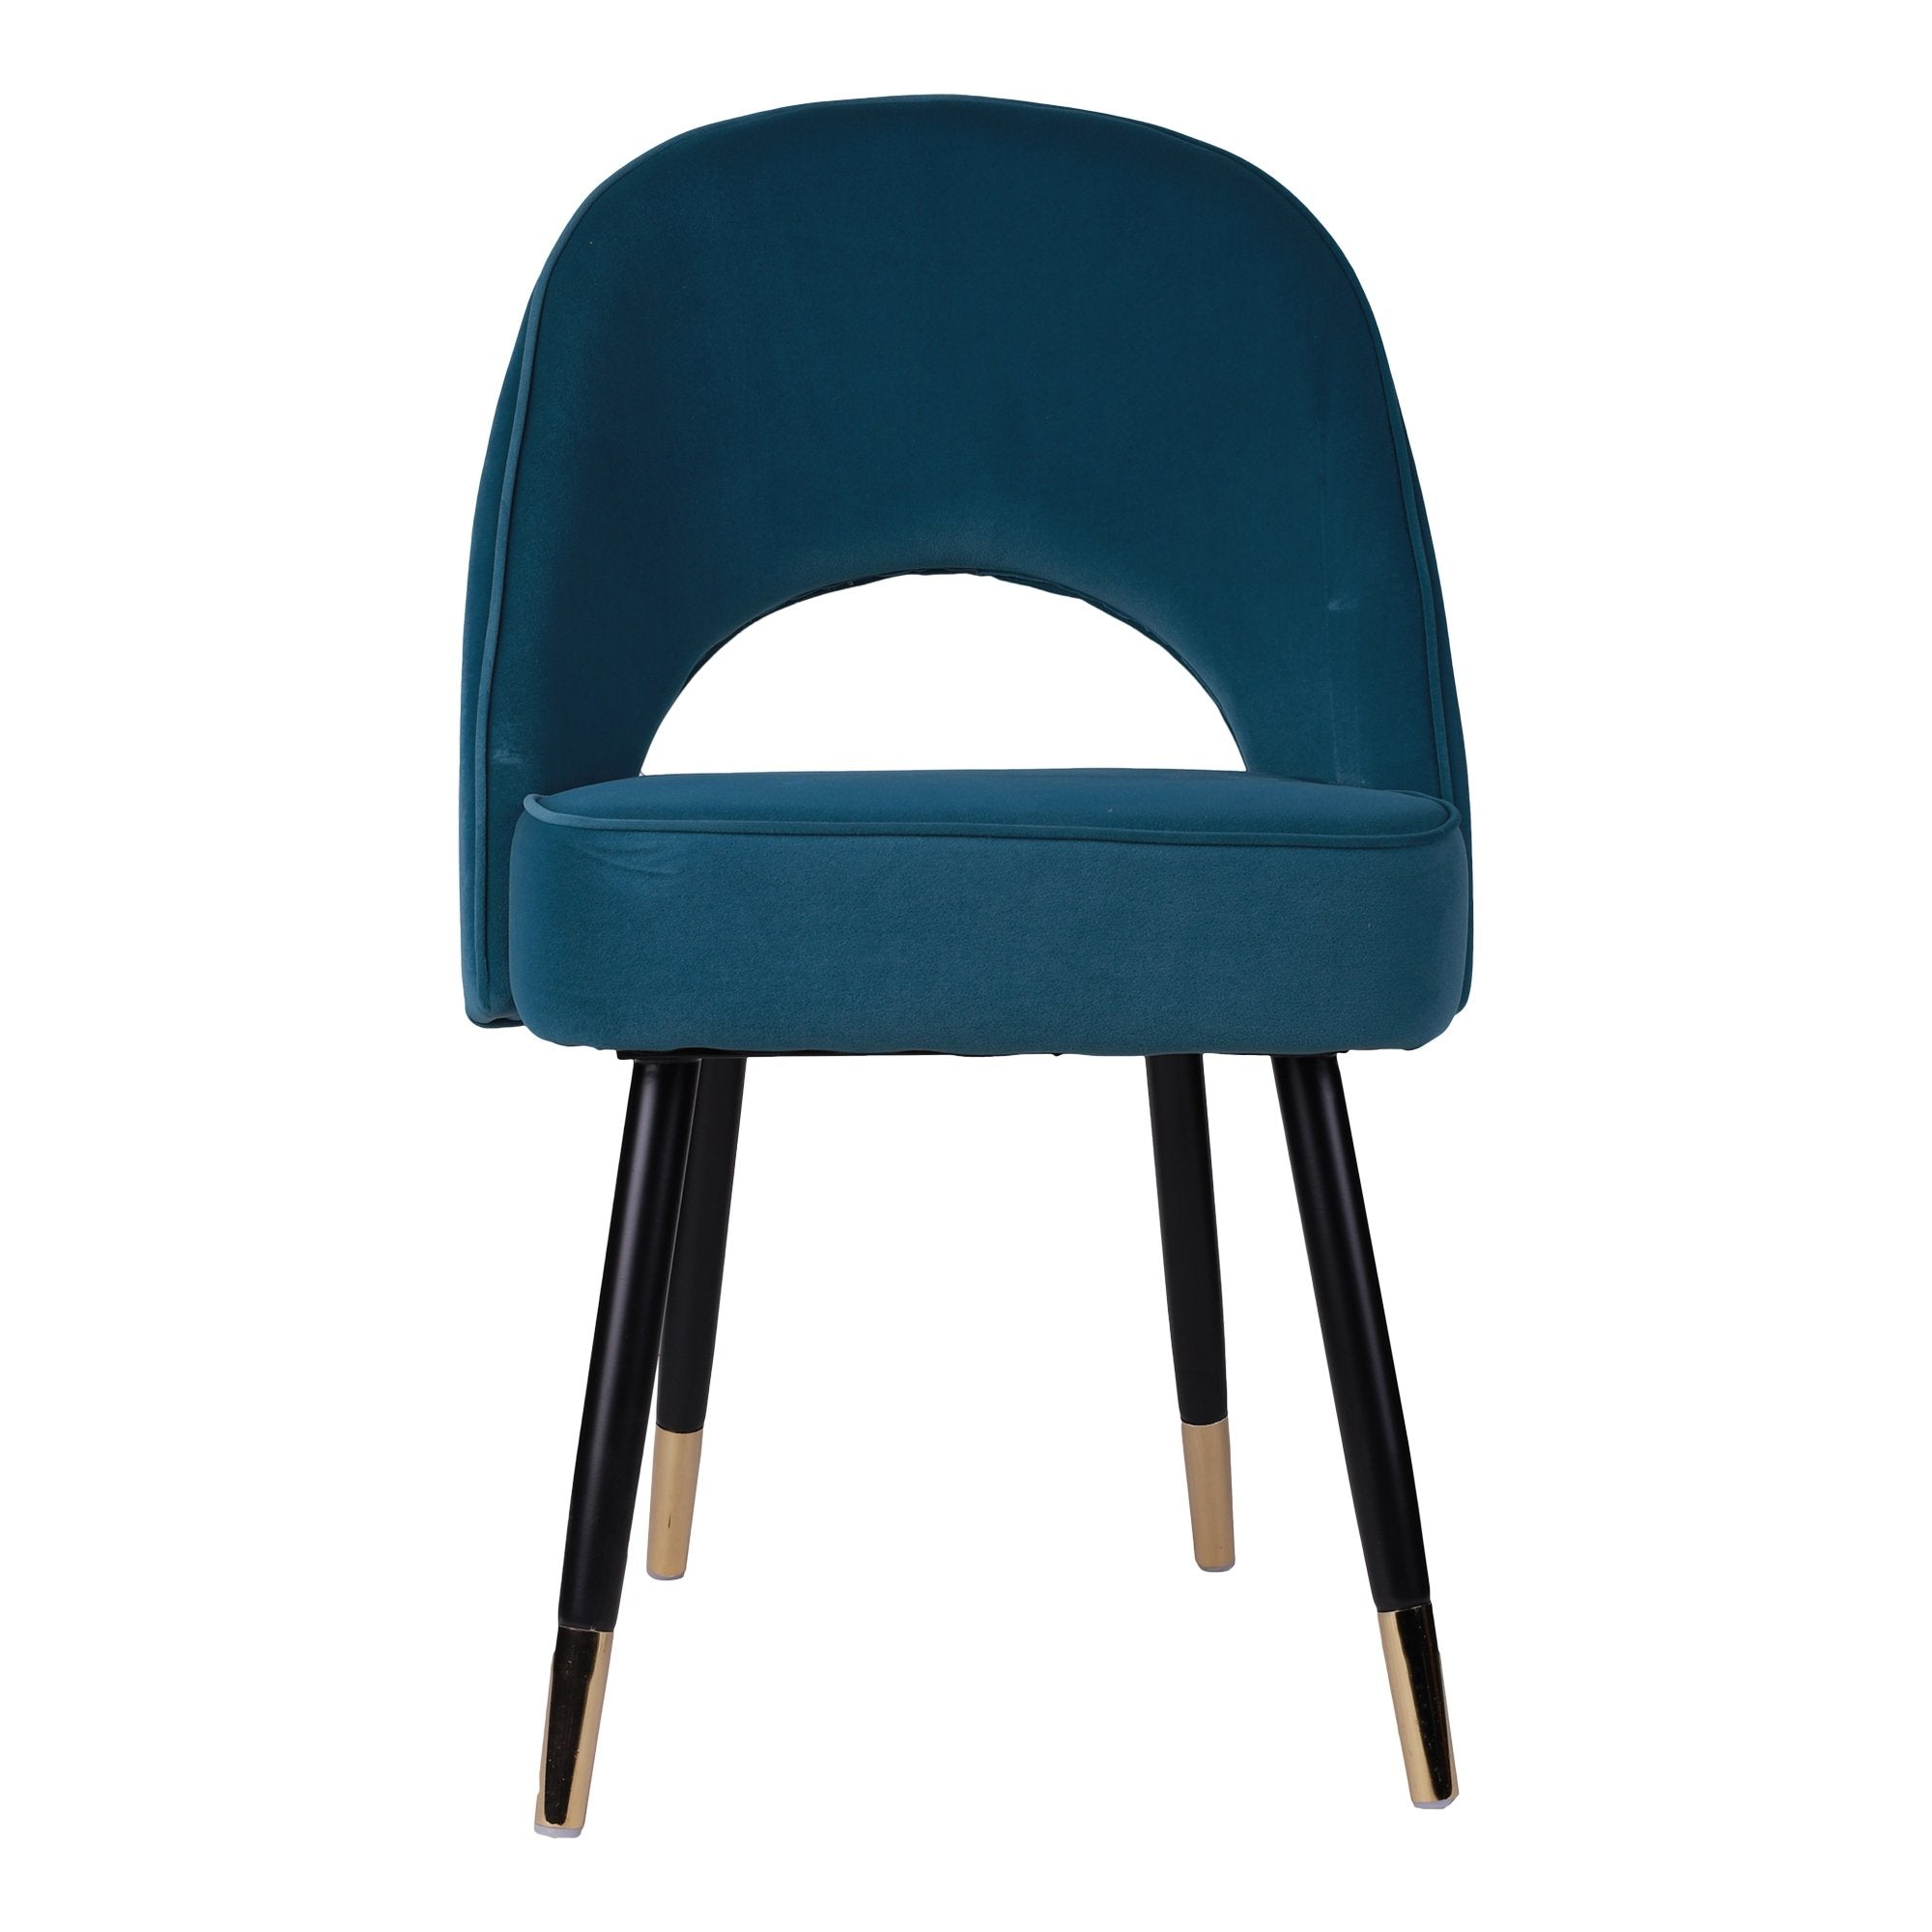 Slipper Chair in Peacock Green Colour from Teaktale Online Store